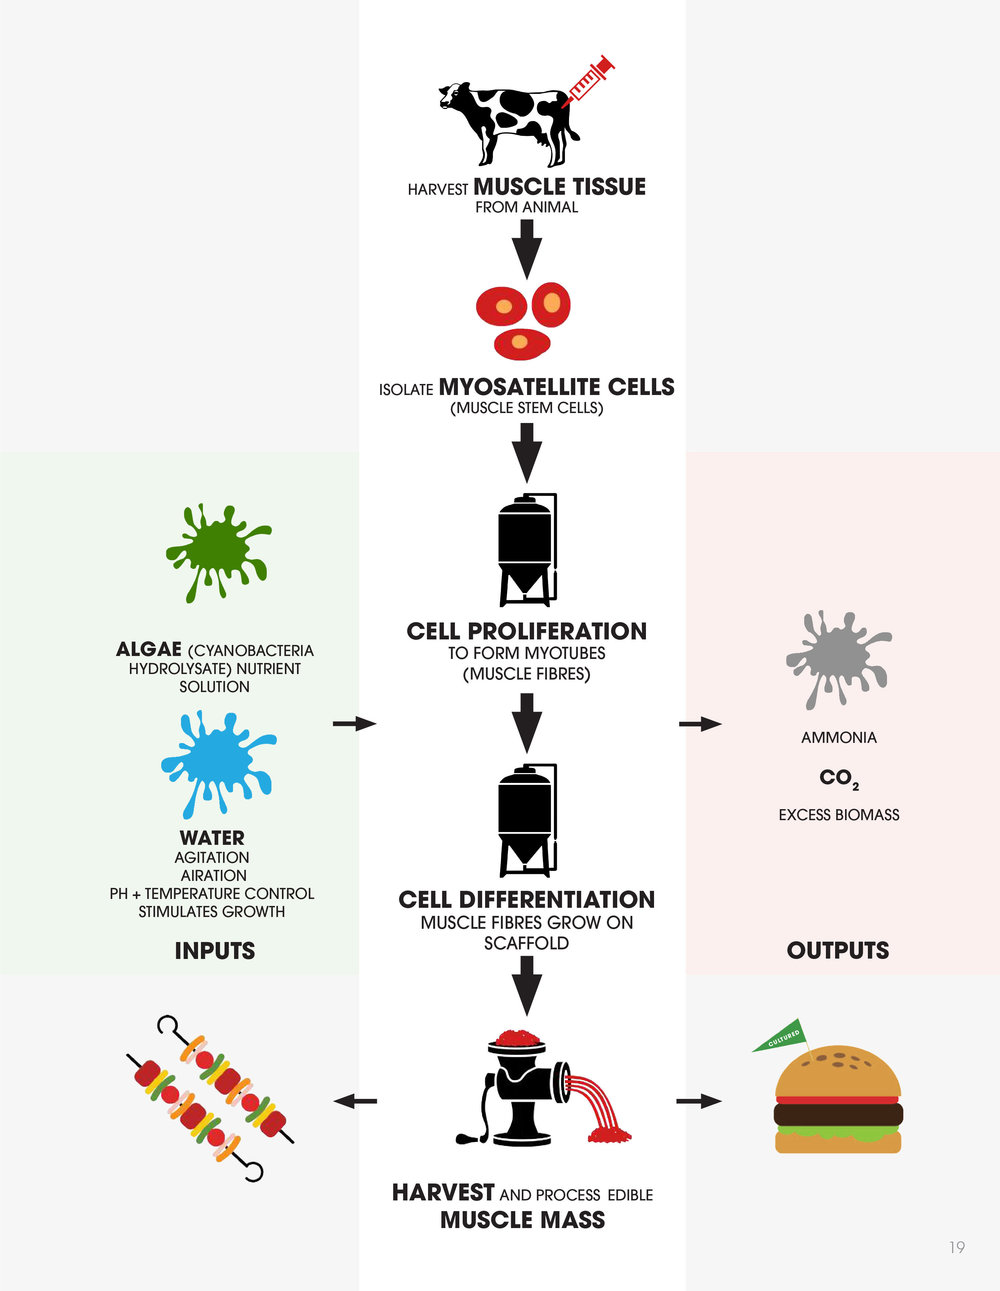 THE CULTURED MEAT PROCESS